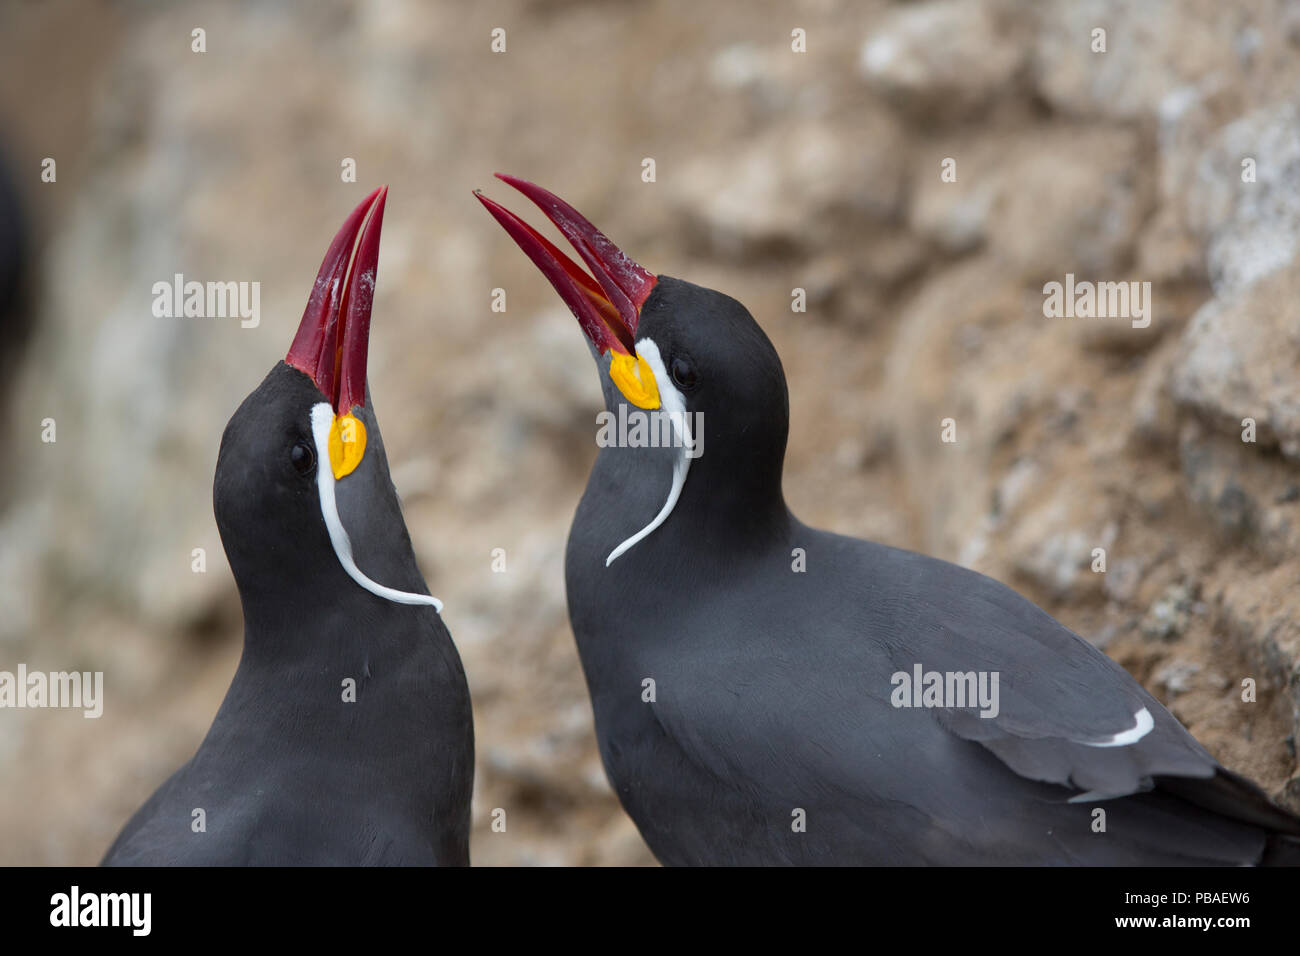 Inca tern (Larosterna inca) male and female in courtship display, guano island, Pescadores, Peru Stock Photo